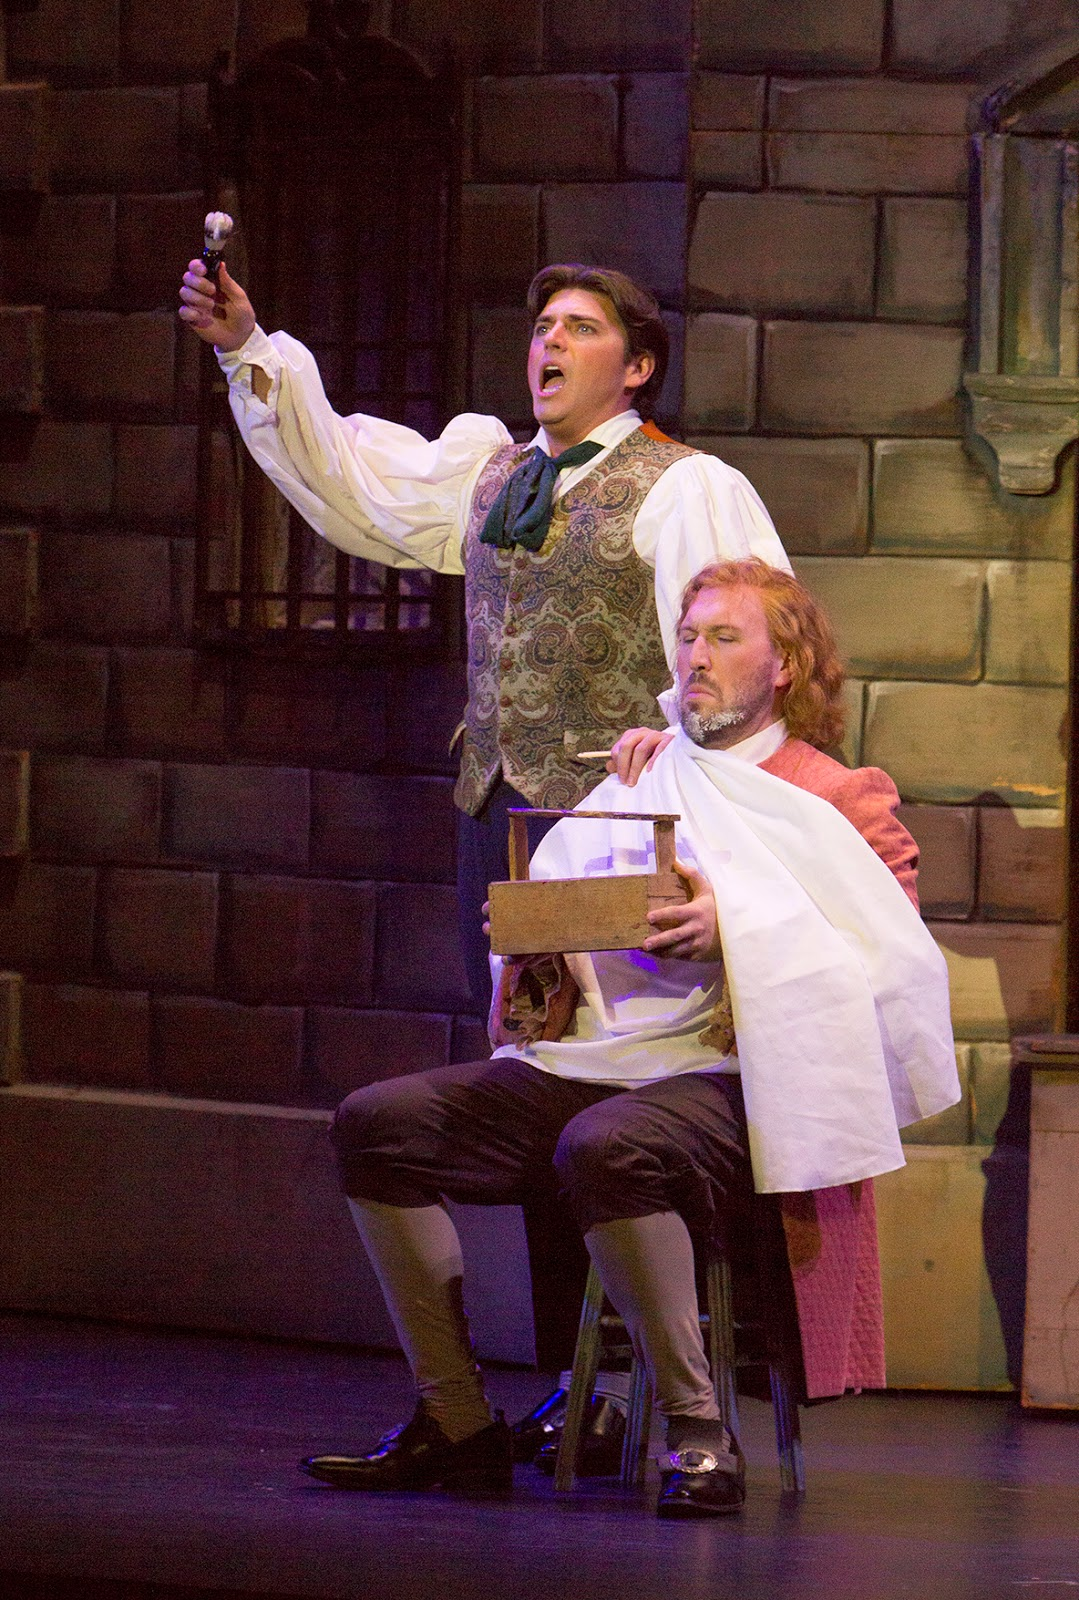 IN PERFORMANCE: baritones DAVID PERSHALL as Figaro (left) and RYAN HILL as Fiorello (right) in Greensboro Opera's production of Gioachino Rossini's IL BARBIERE DI SIVIGLIA, January 2018 [Photo by Star Path Images, © by Greensboro Opera]